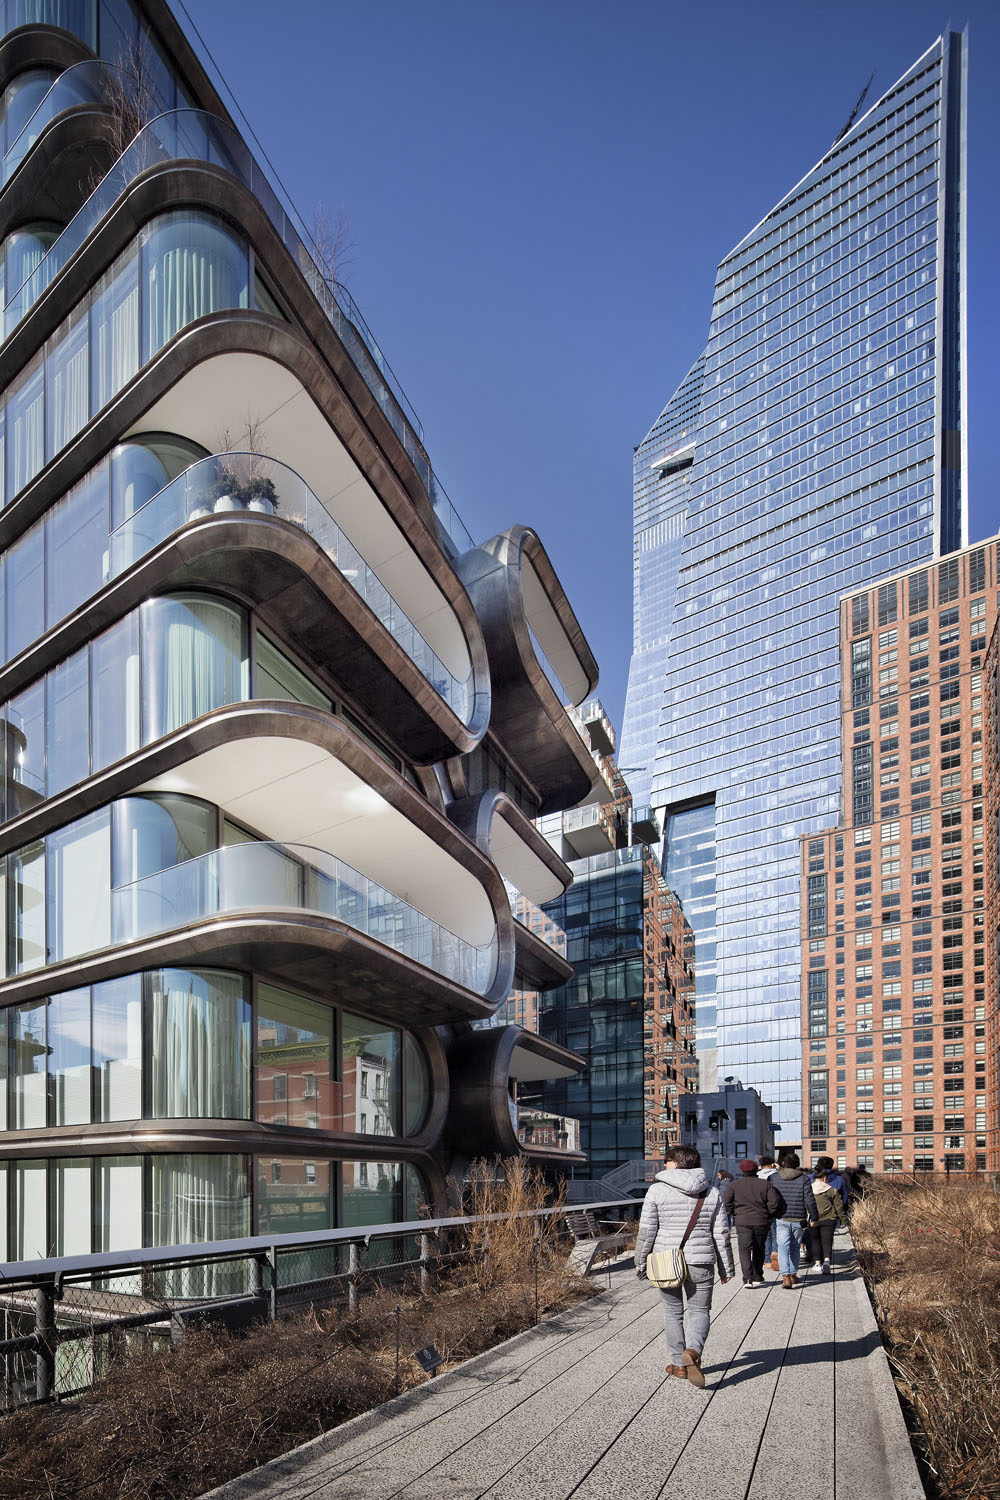 Kohn Pedersen Fox - KPF's new Manhattan development, Hudson Yards including 520 West 28th Street by Zaha Hadid. Shot from and around the High Line, Manhattan, New York City, USA.